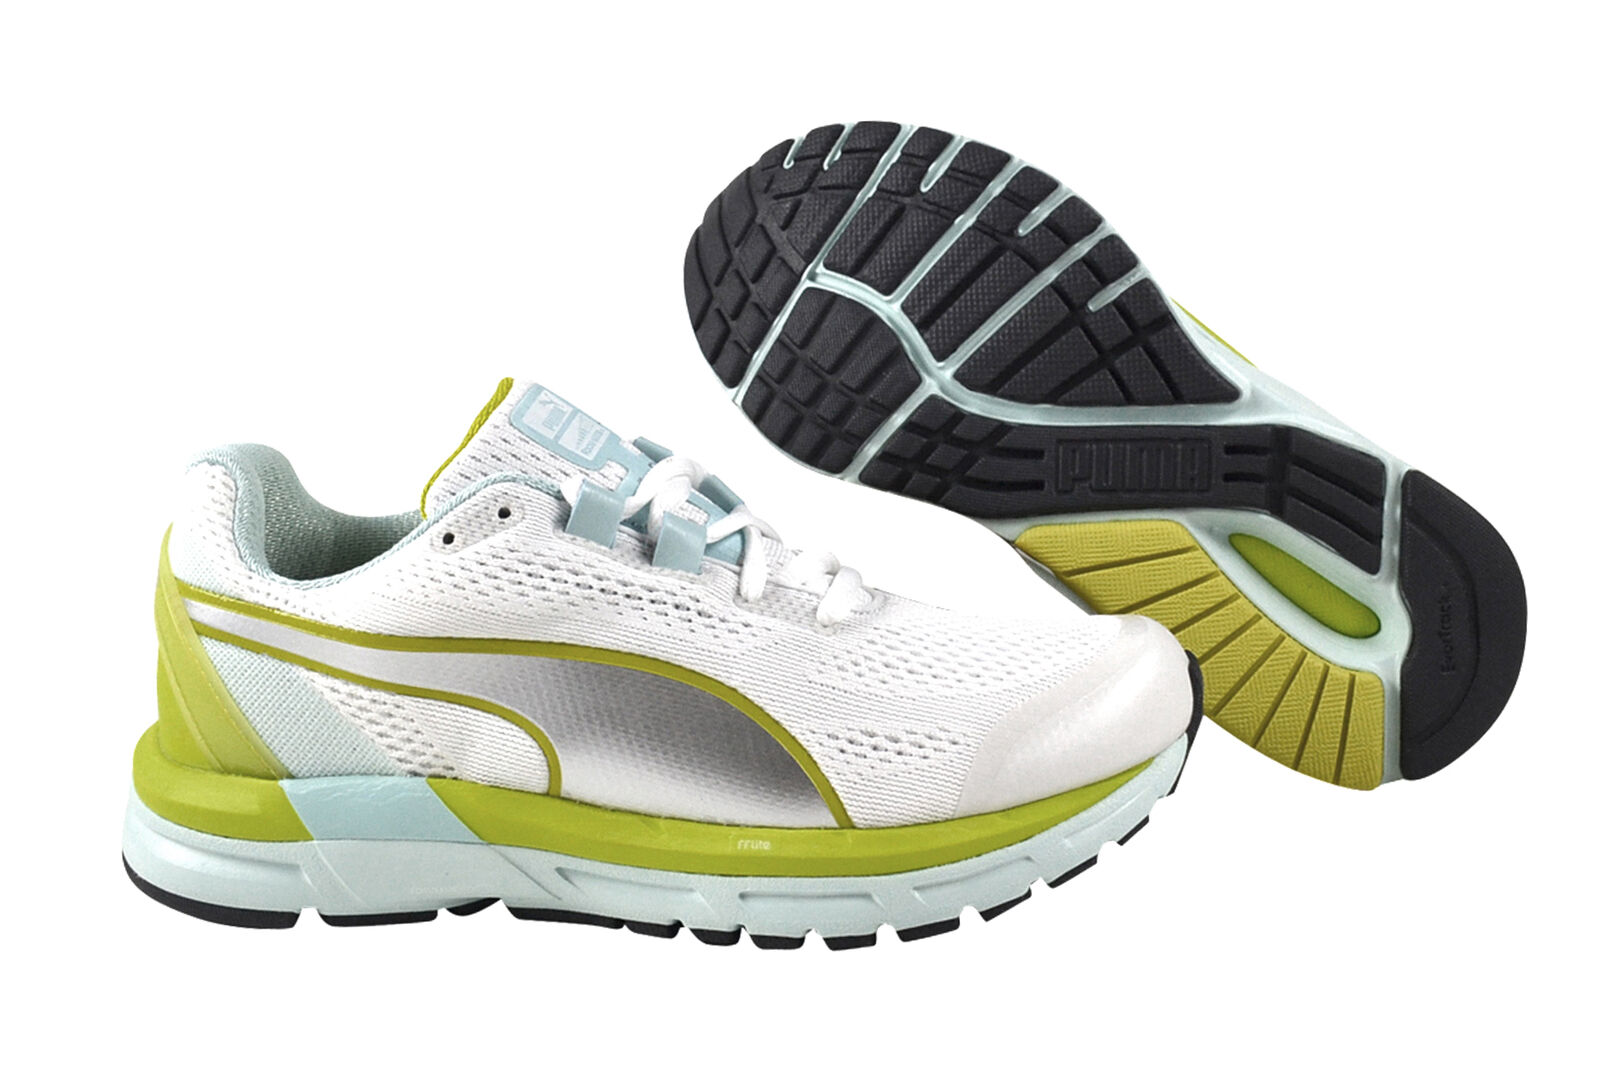 Puma Faas 600 S v2 soit + blanc Clearwater jaune argent Chaussures Baskets 188125 01